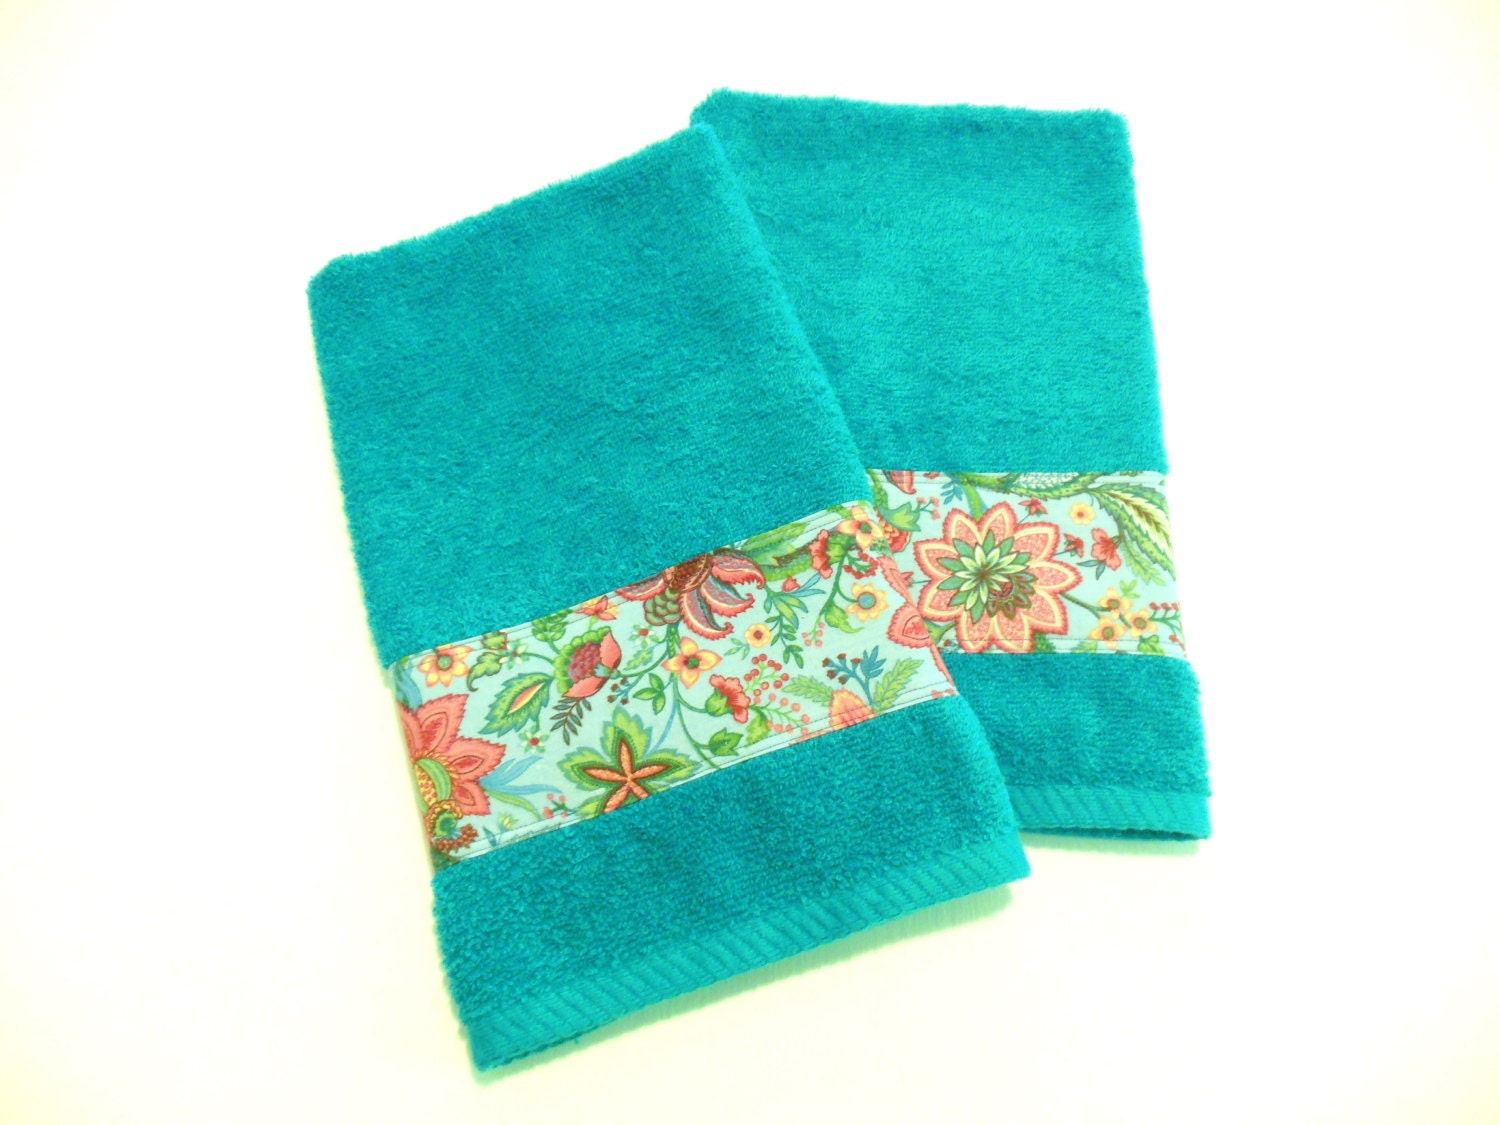 Teal hand towels kitchen or bath decorative towels set of 2 for Teal bath sets